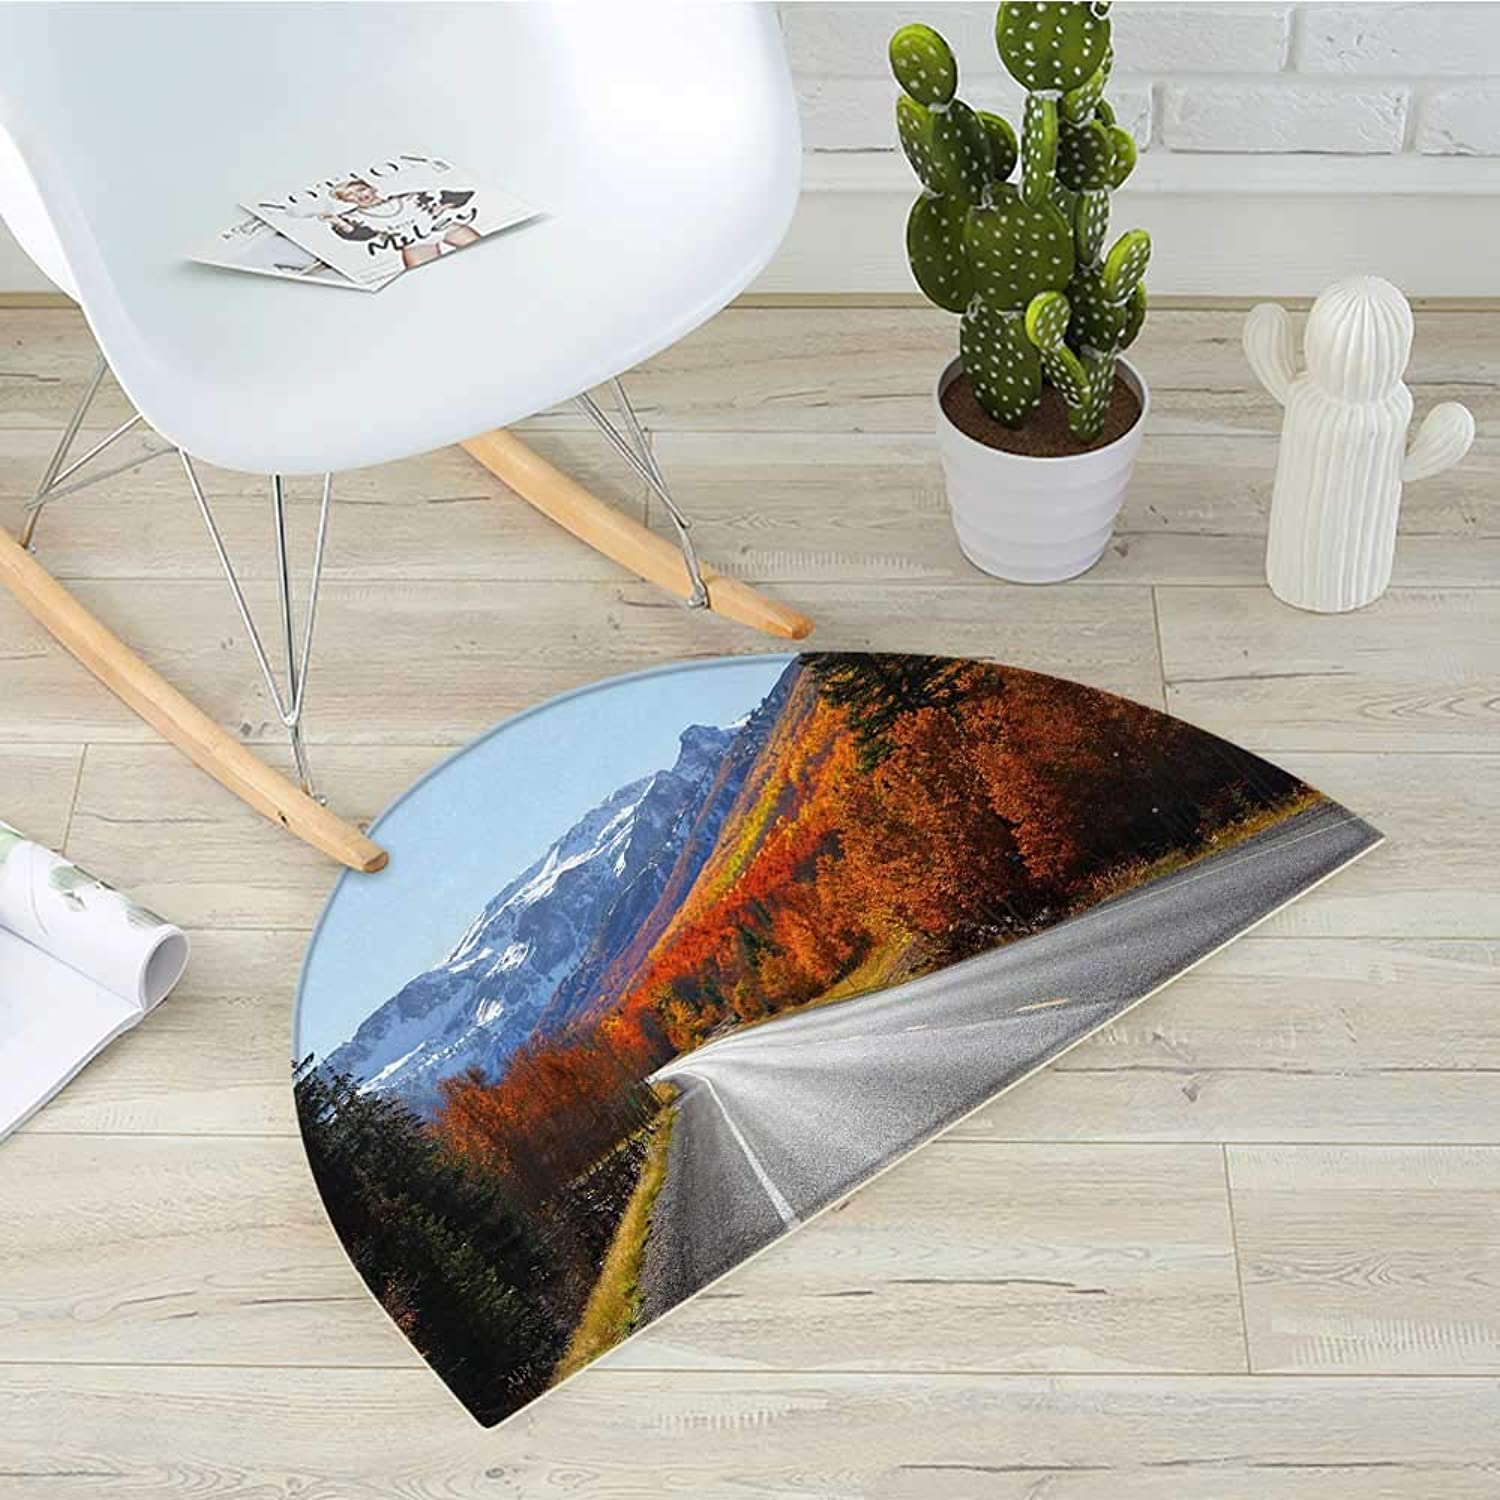 Fall Semicircle Doormat Highway Through The Countryside American Landscape Snowy Mountains Foliage Travel Halfmoon doormats H 39.3  xD 59  Multicolor